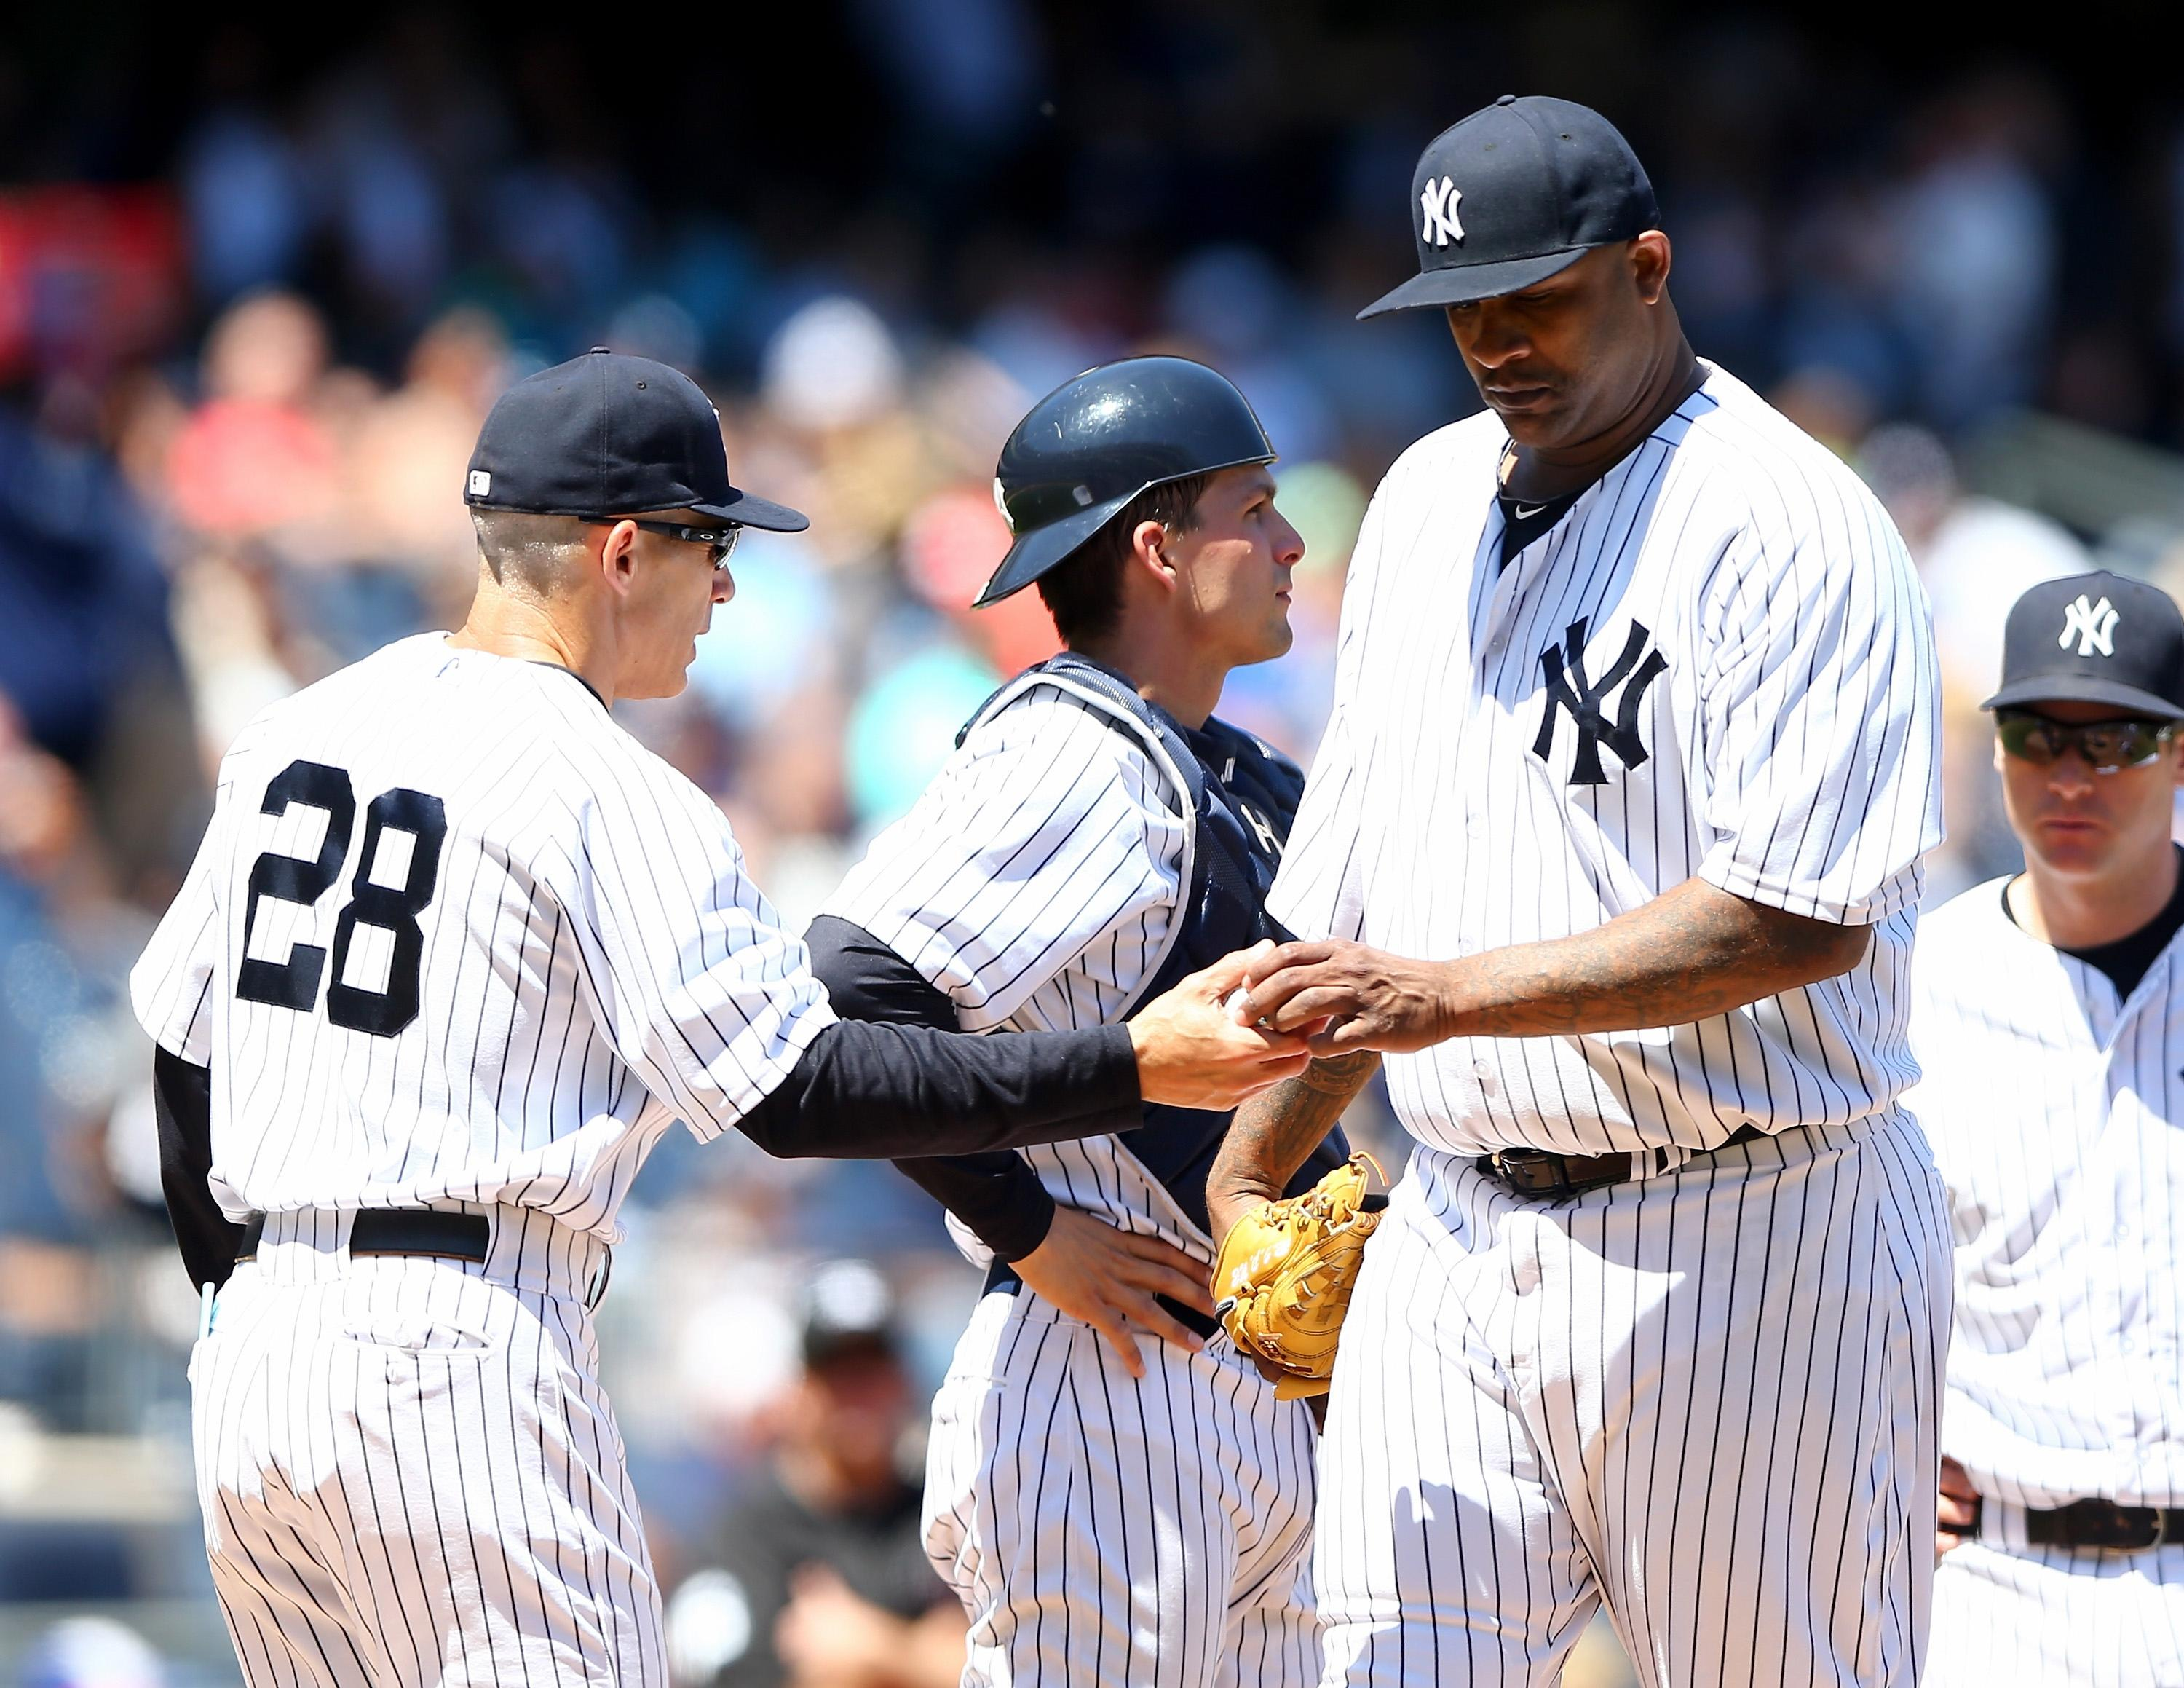 Yankees losing streak reaches five after lopsided loss to Rangers